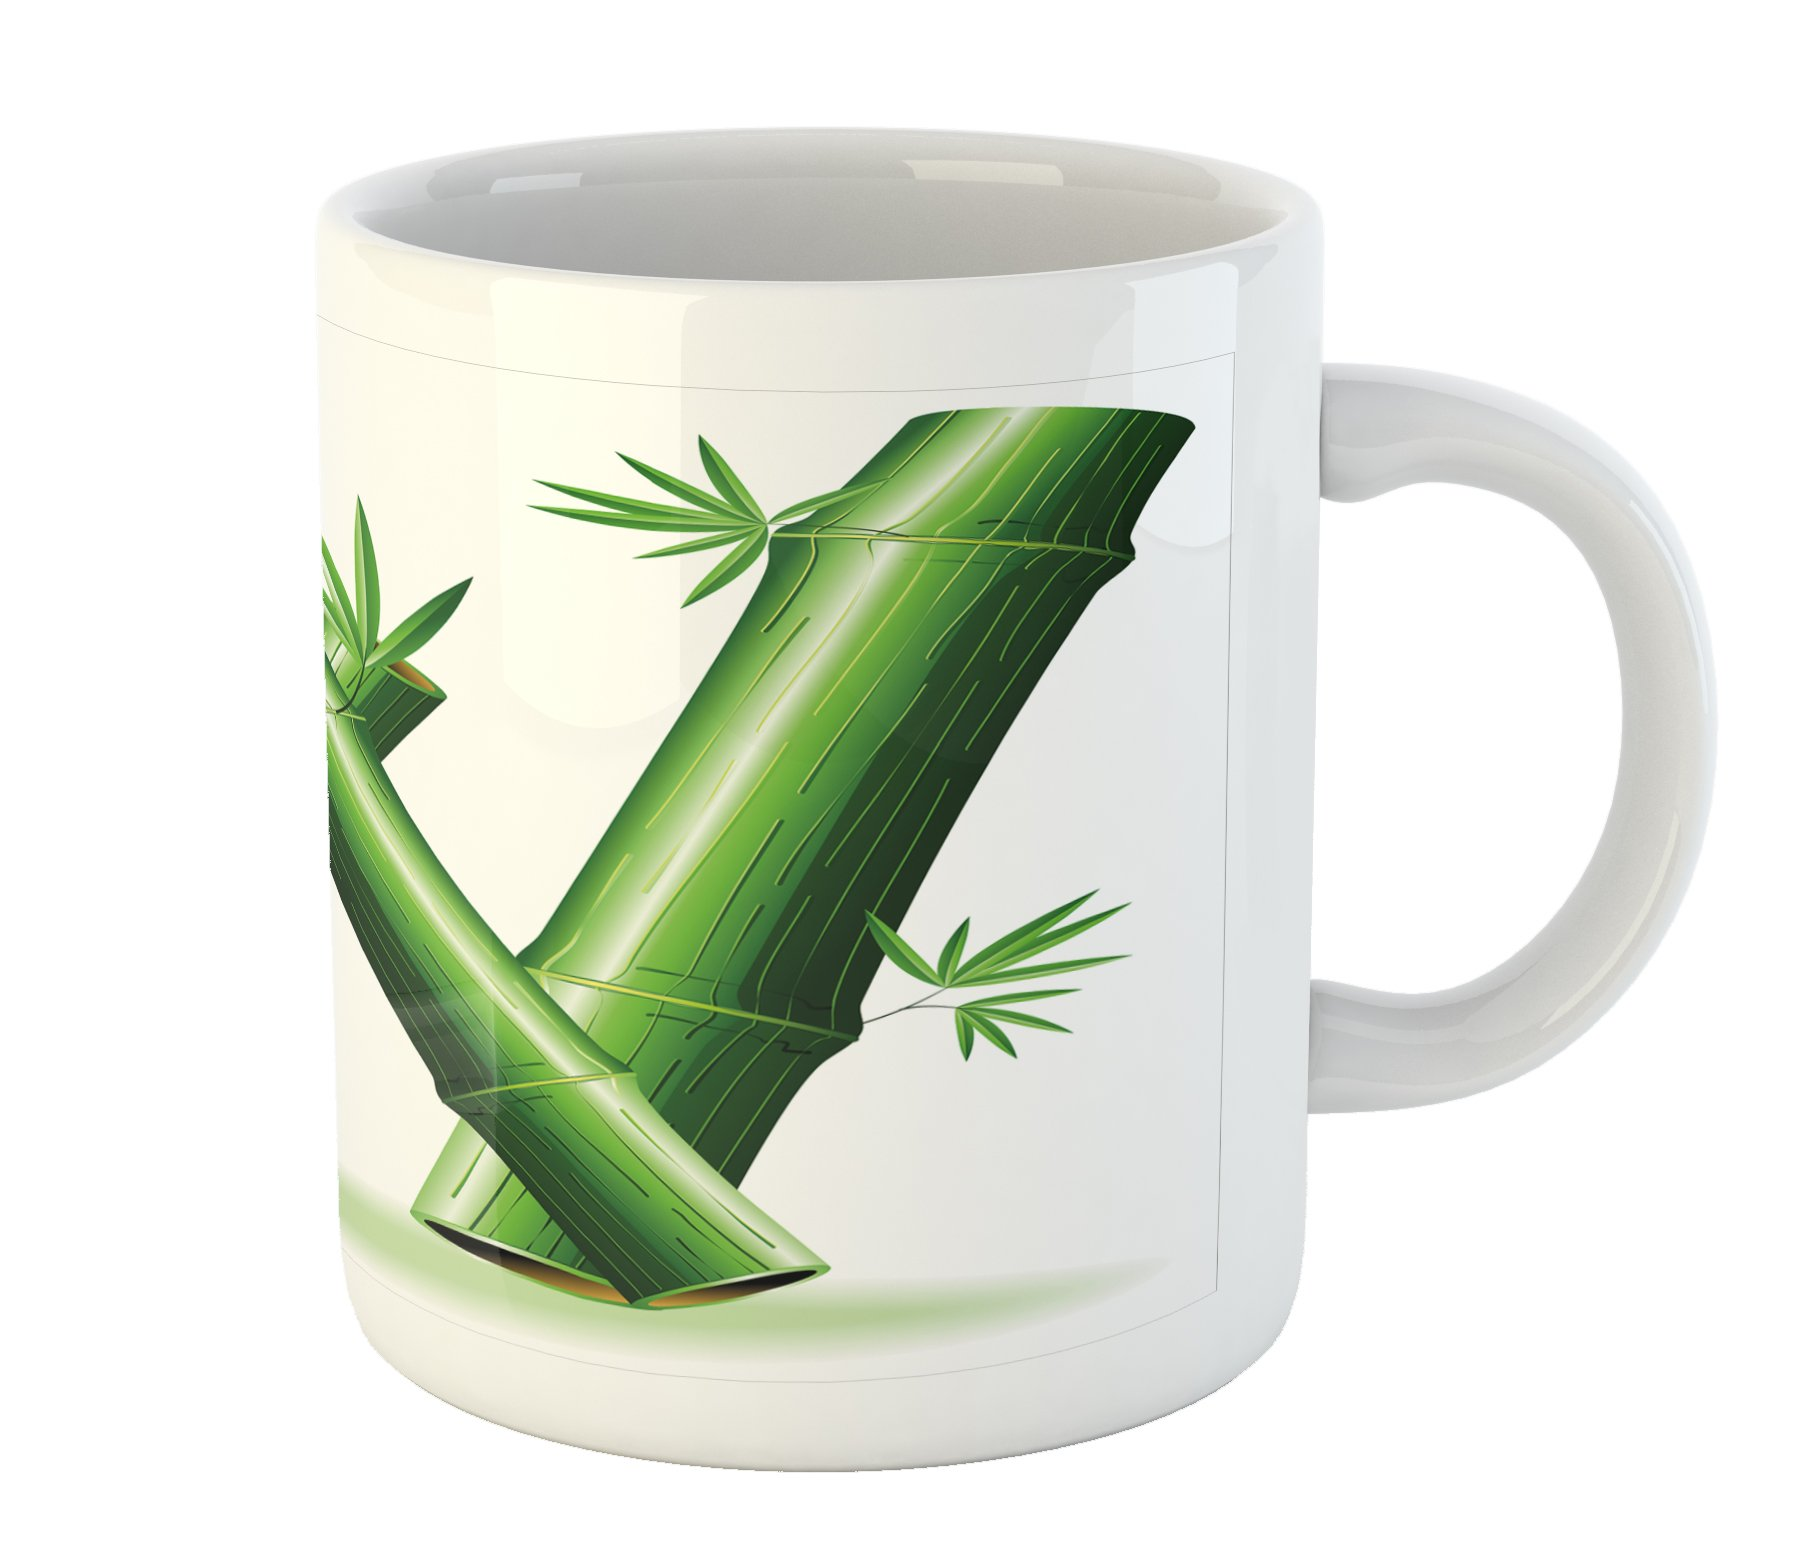 Ambesonne Letter W Mug, Bamboo Branches Forming Letter W Zen Spa Themed Alphabet Typeset Green Leaves, Printed Ceramic Coffee Mug Water Tea Drinks Cup, Green White